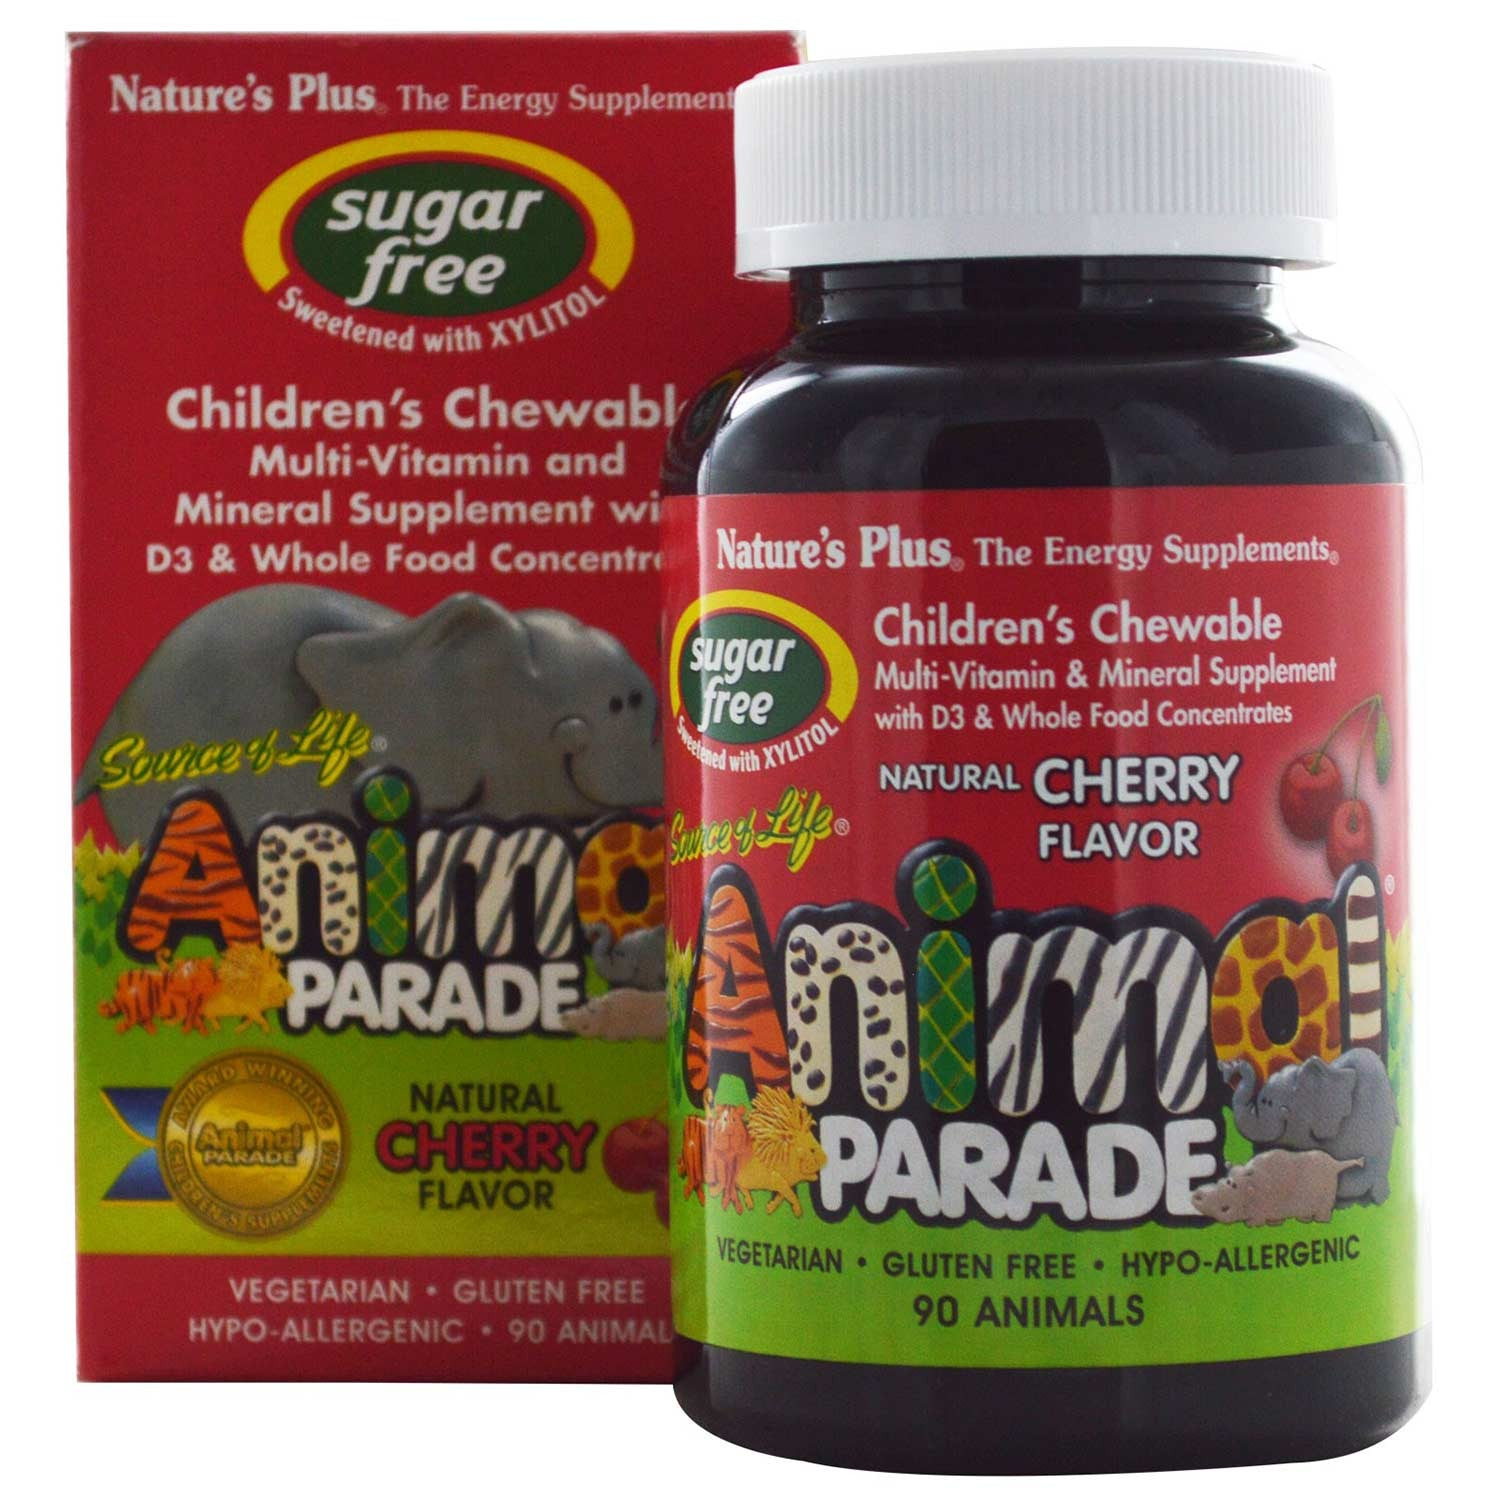 Natures Plus Source of Life Animal Parade Multi-Vitamin & Mineral - Cherry (Sugar-Free), 90 tabs.-NaturesWisdom